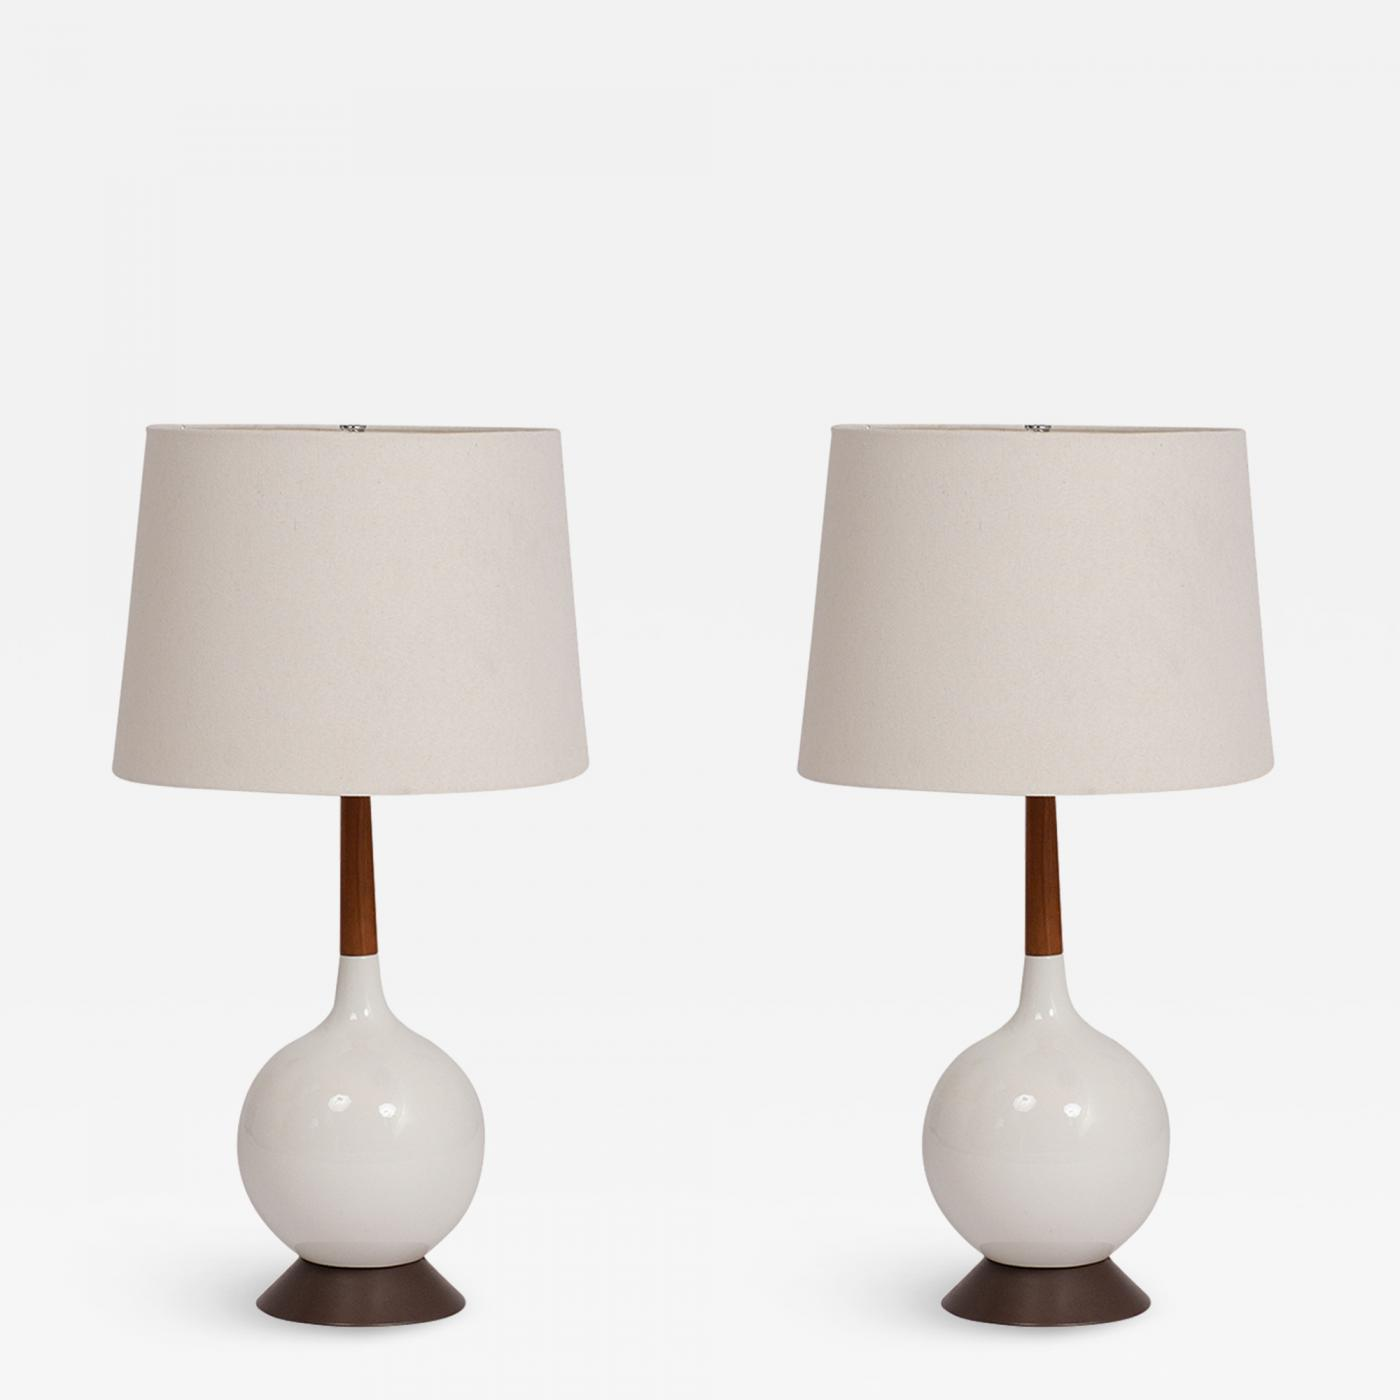 Pair Of 1960 S Mid Century Modern Ceramic Table Lamps